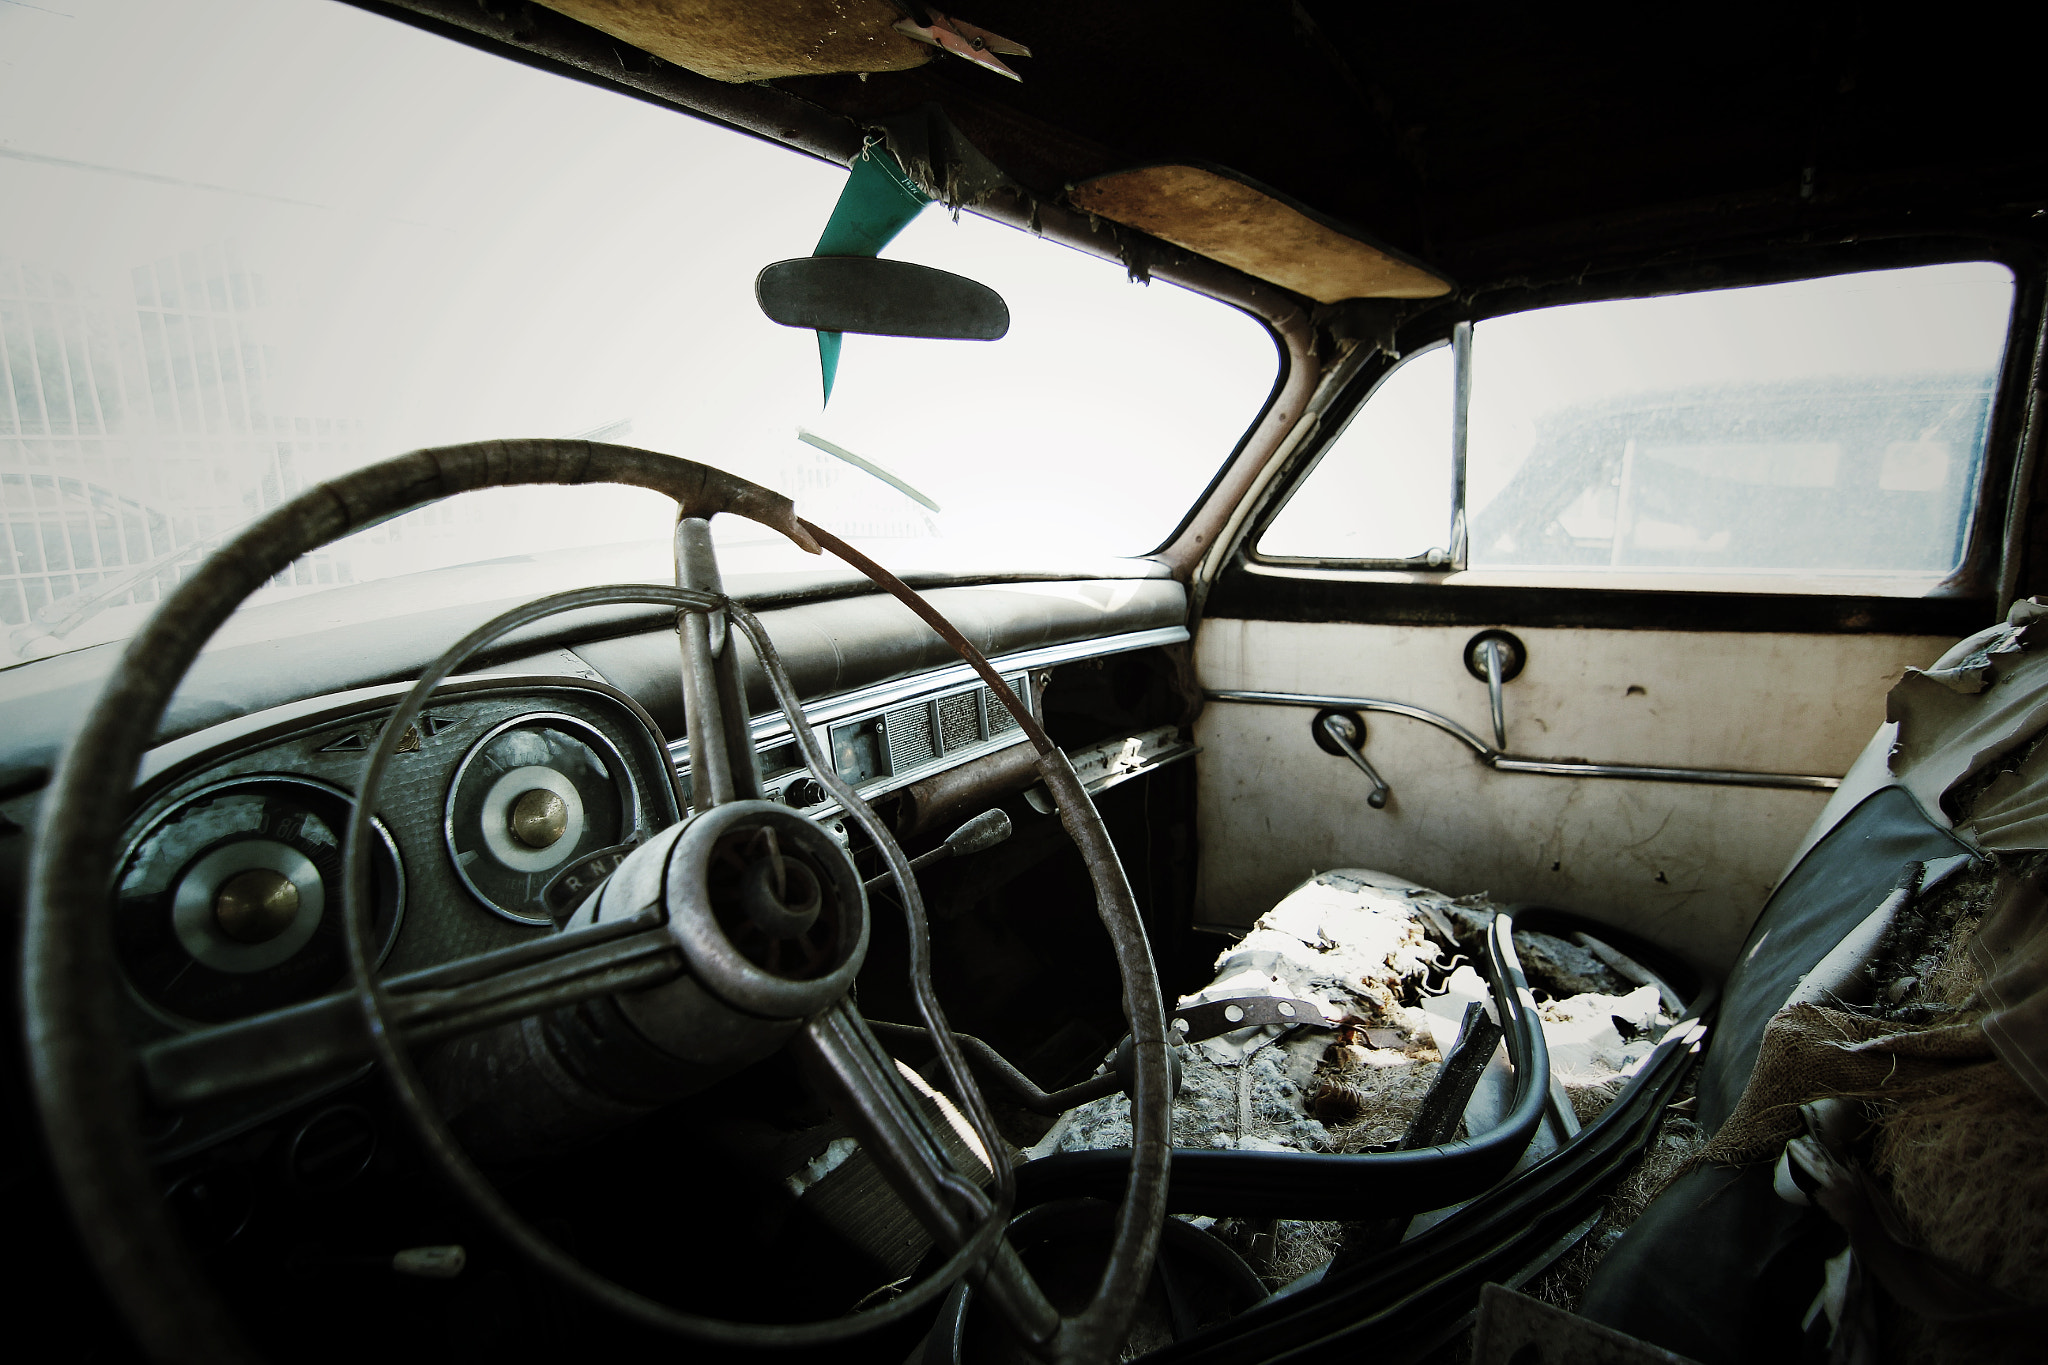 Photograph Old Crysler interior by Martin Cox on 500px